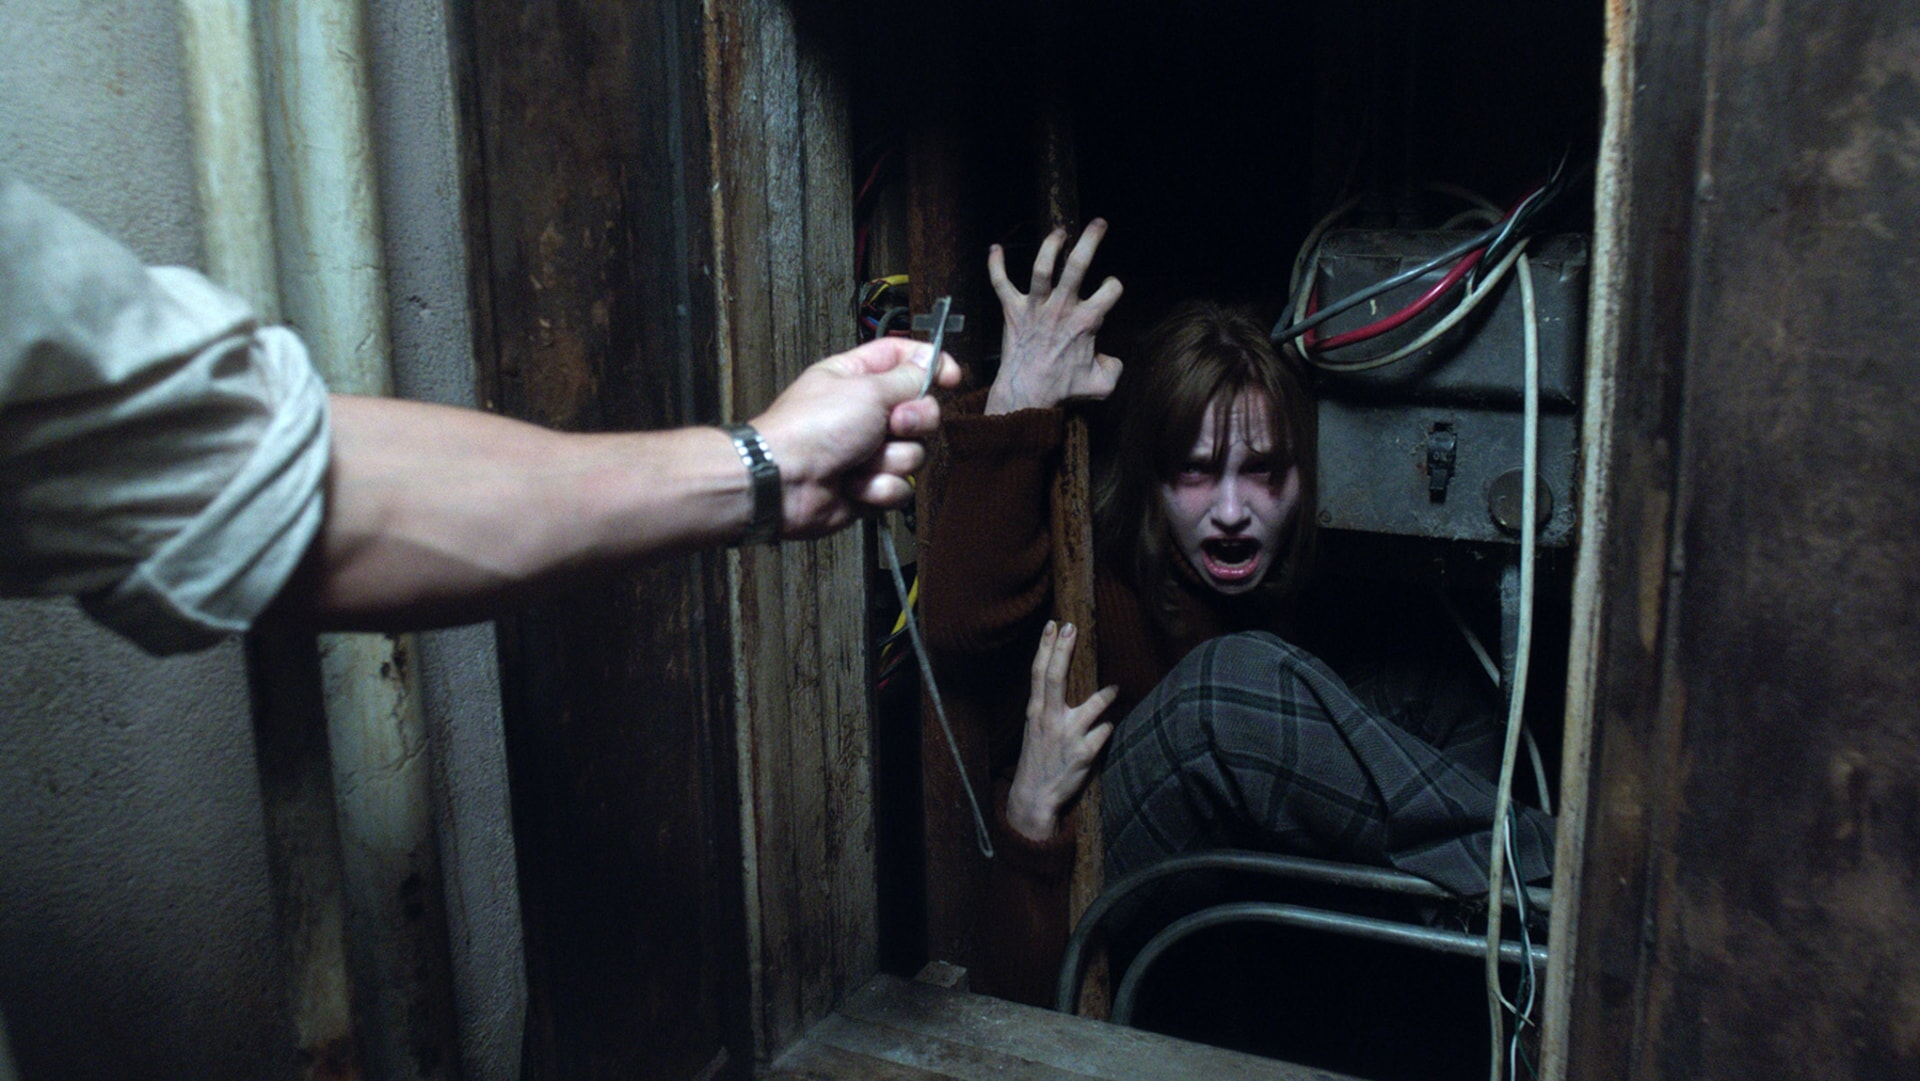 MADISON WOLFE as Janet Hodgson crouching in fear from a crucifix